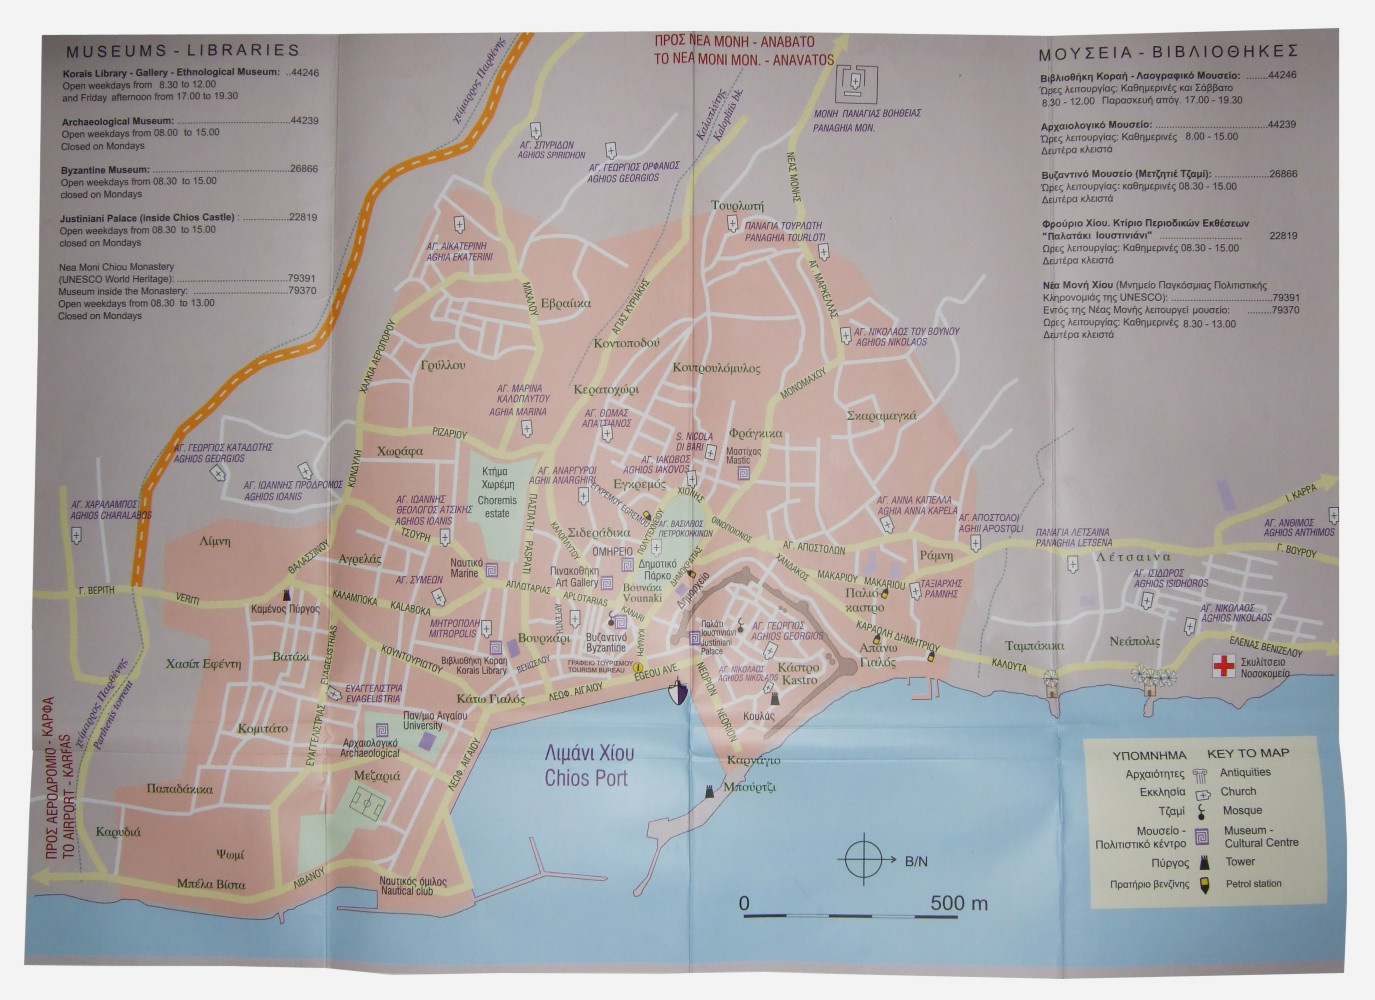 Chios town map - click to enlarge